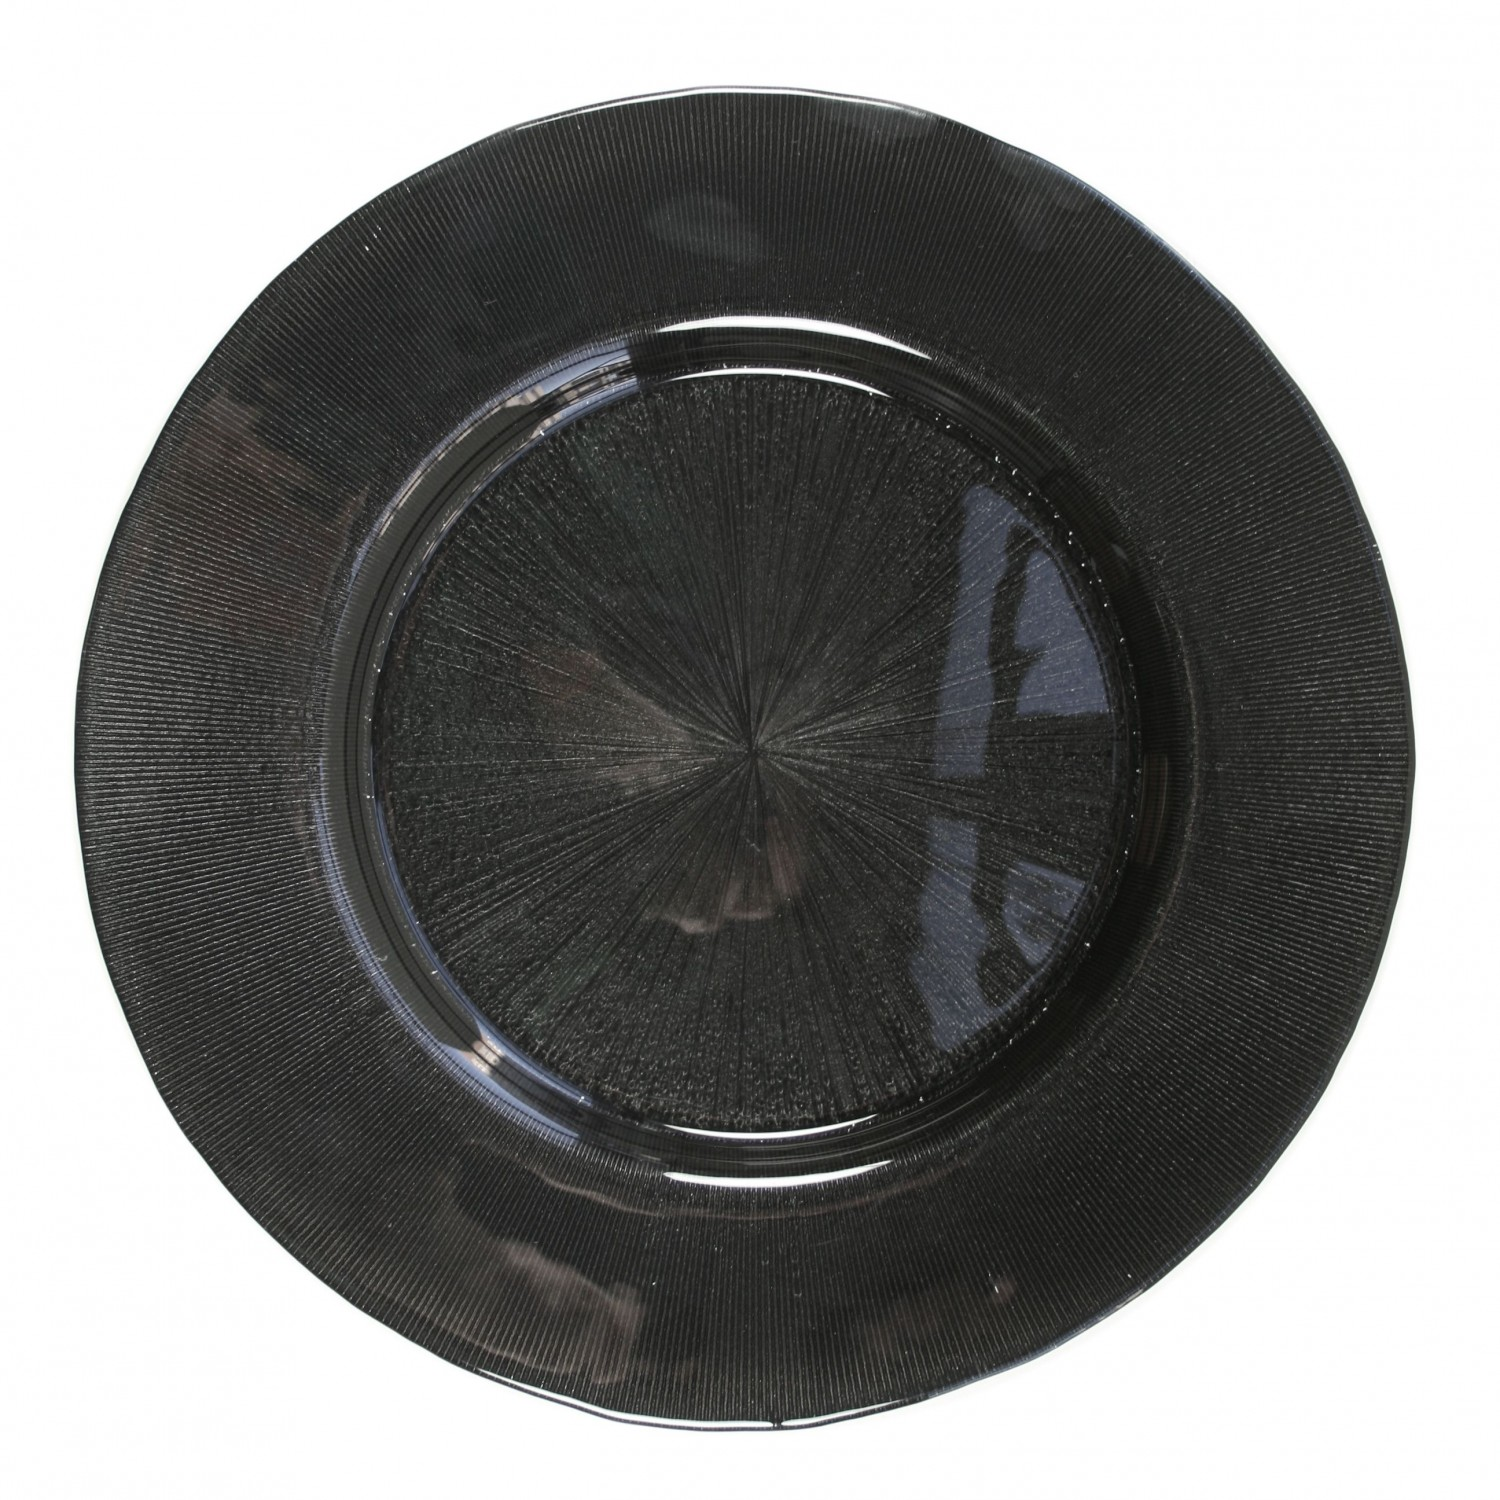 The Jay Companies 1900016 Round Black Glass Starburst Charger Plate 13""